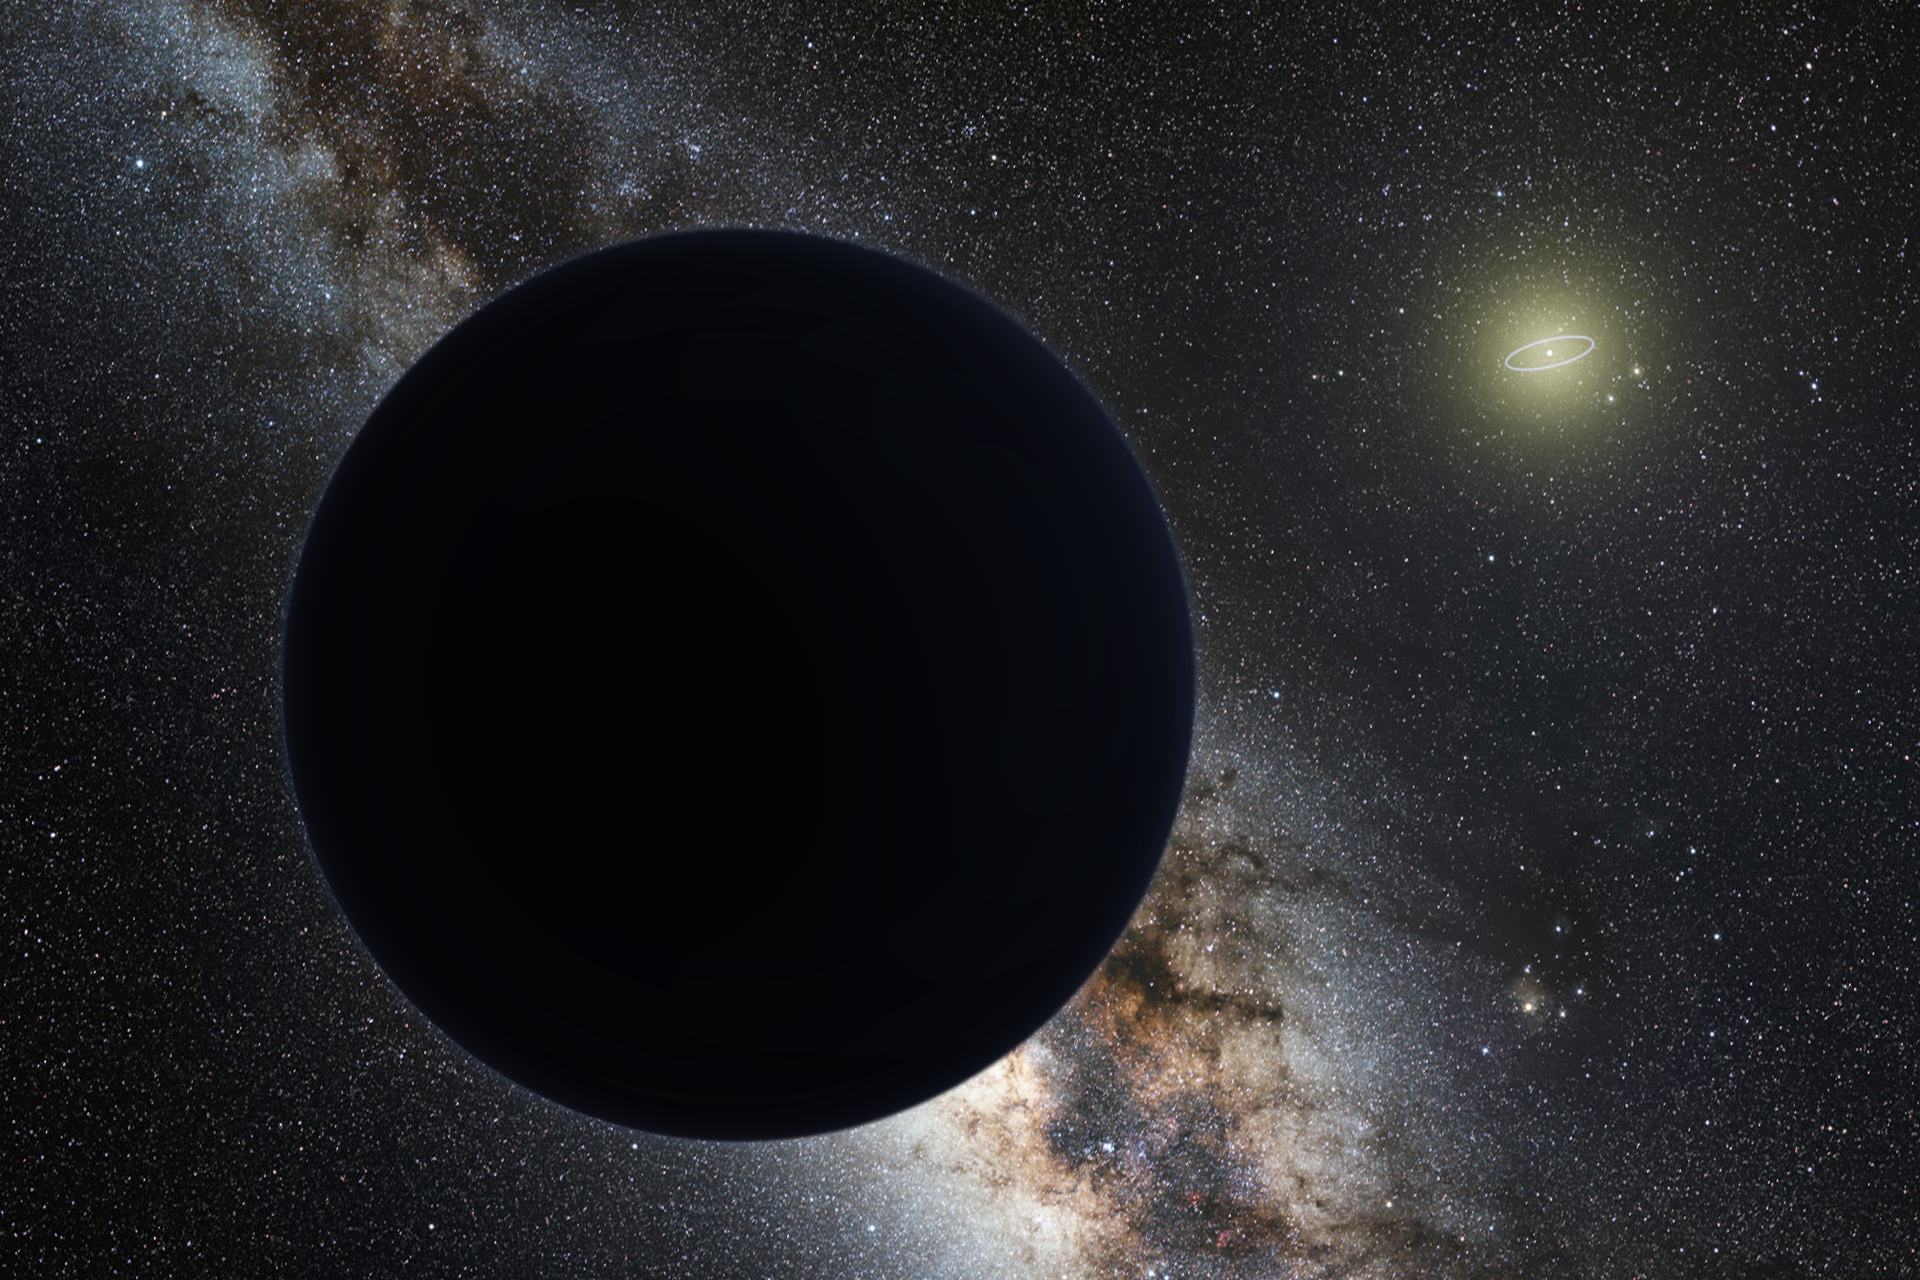 Artist conception of Planet 9 against space background